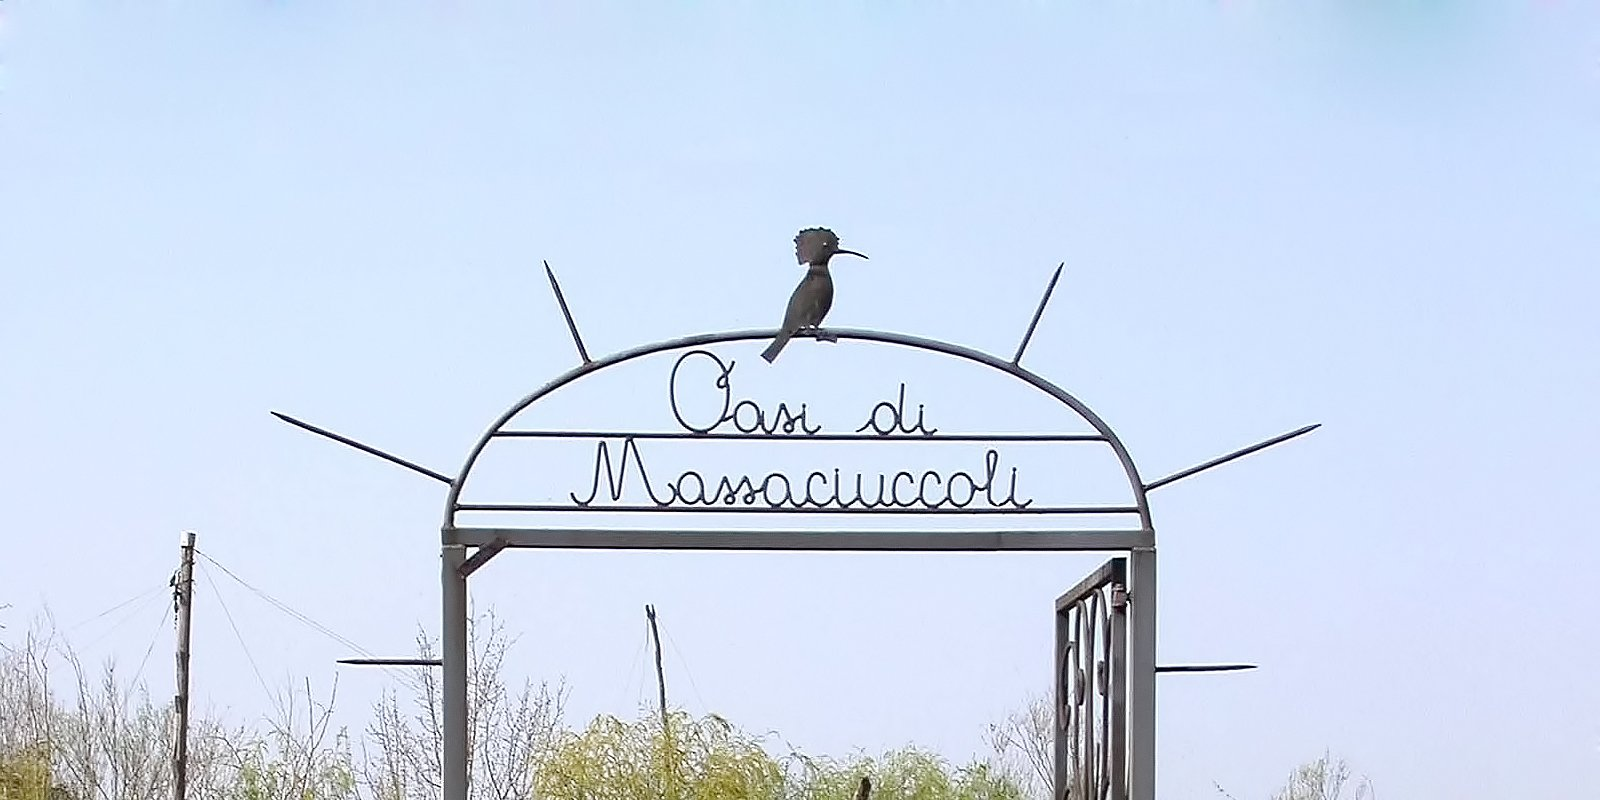 Naturoase des Massaciuccoli-Sees